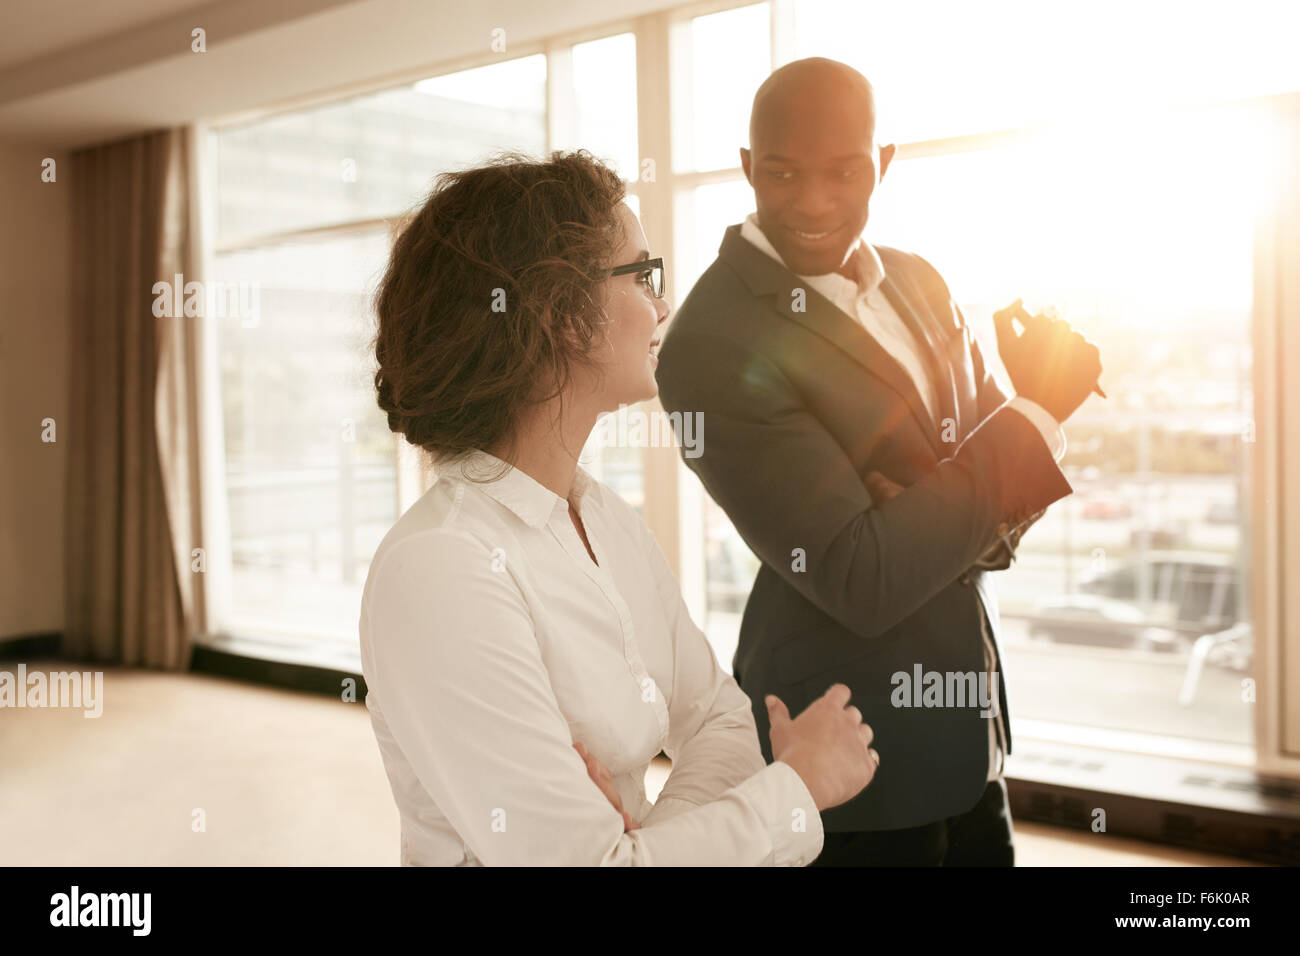 Two young business people discussing work during a business presentation in conference room at a hotel. Smiling - Stock Image